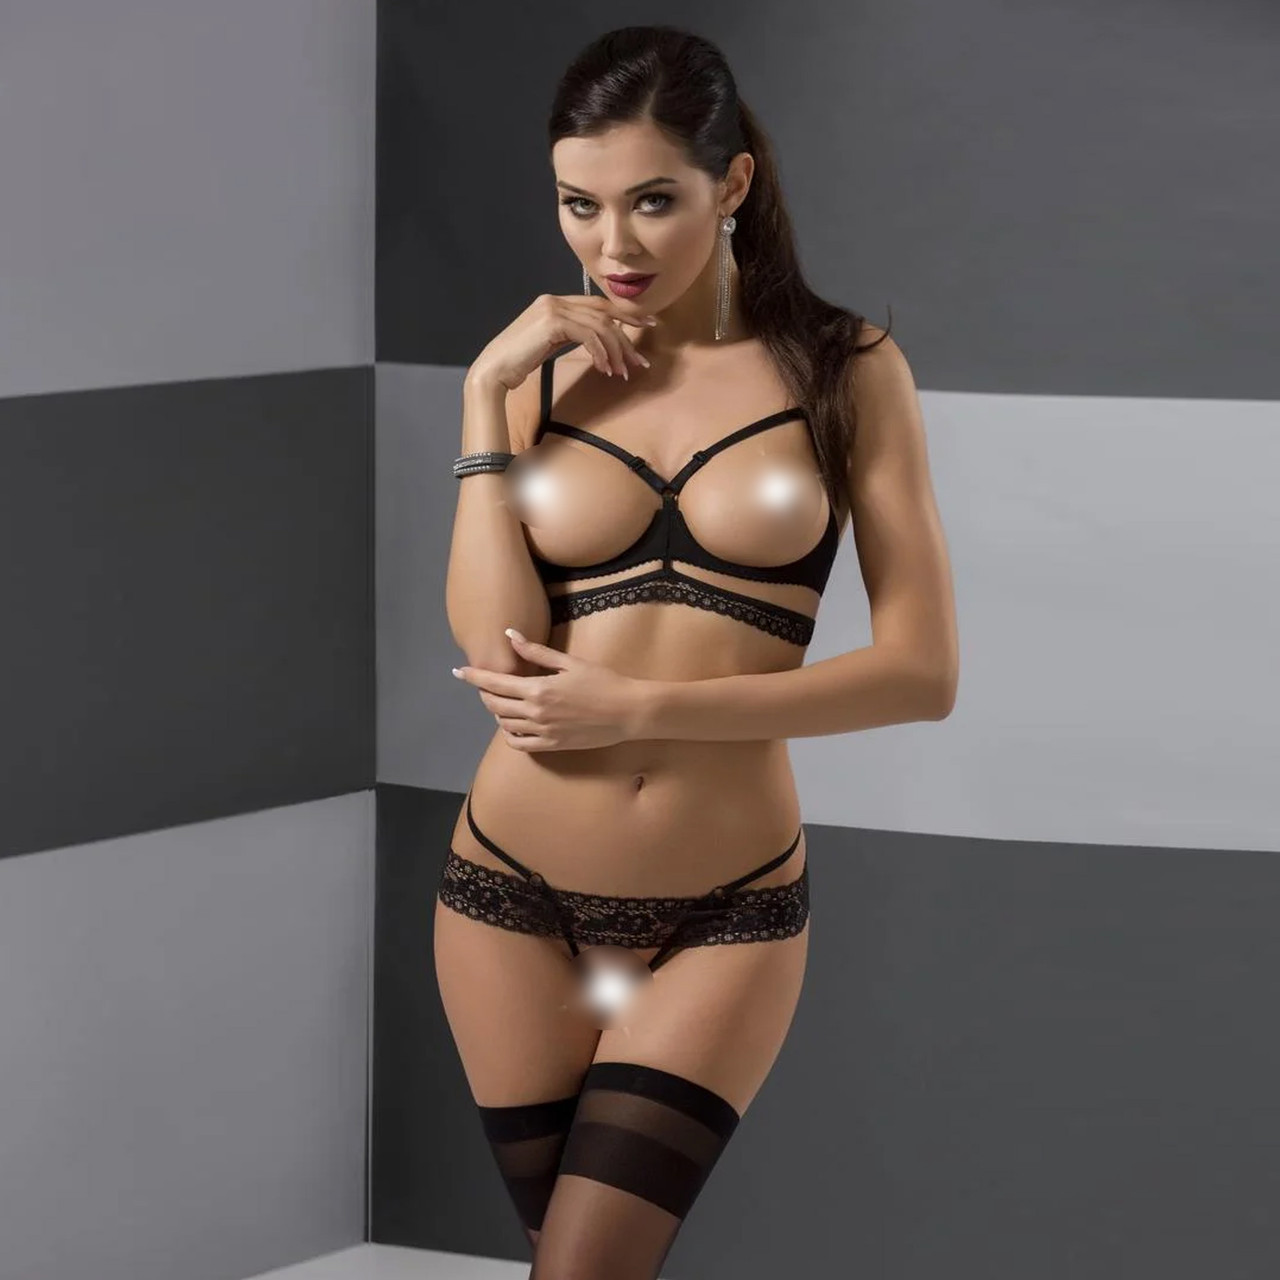 Комплект белья SARIA SET OpenBra black S/M - Passion Exclusive: стрэпы: откртый лиф, стринги